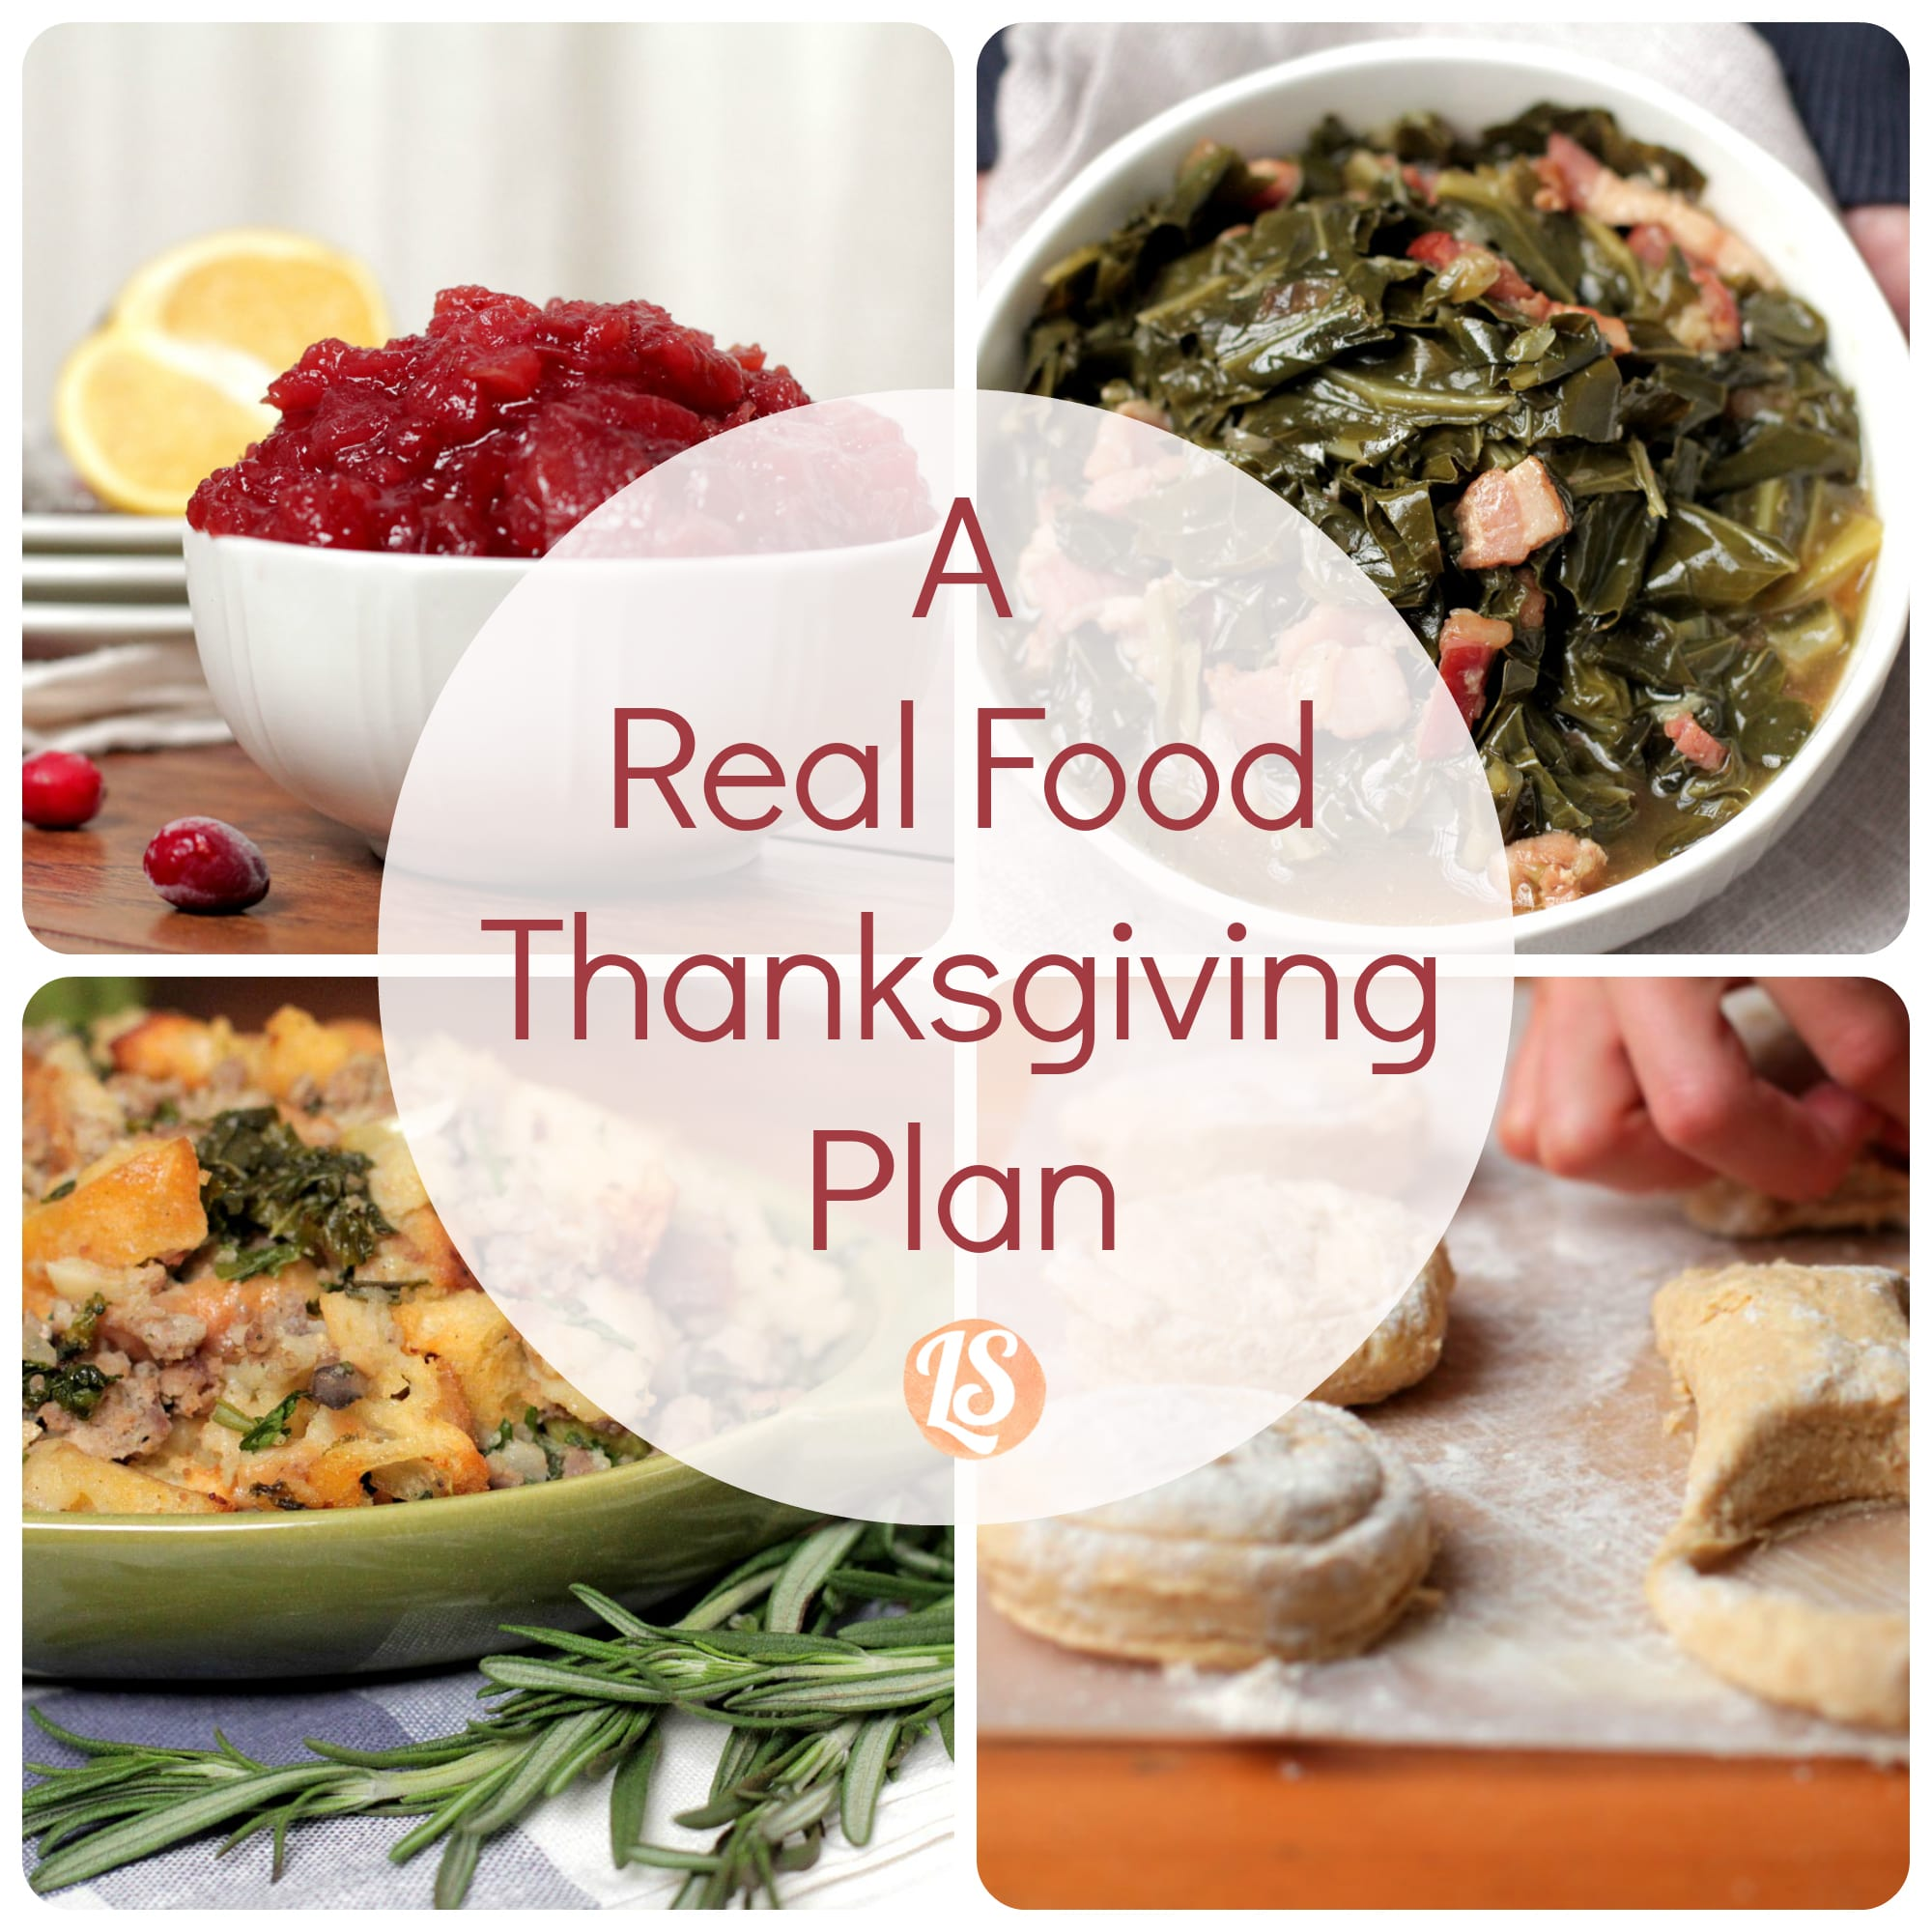 A Real Food Thanksgiving Plan